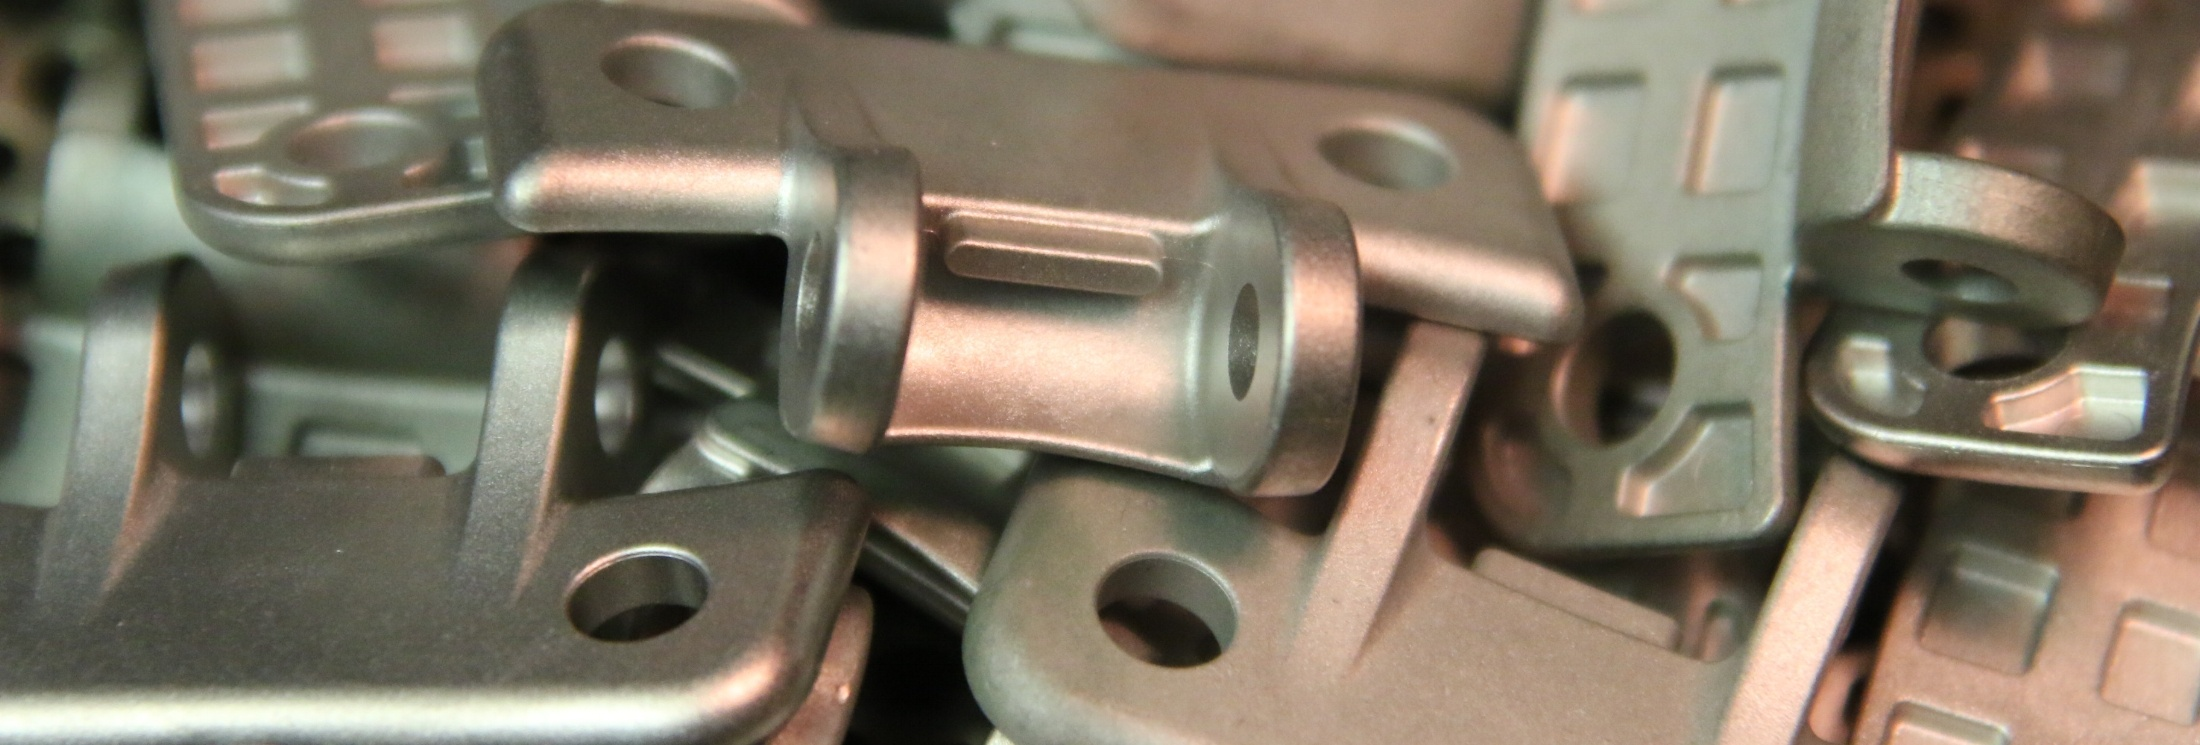 manufactured-metal-molded-parts.jpg